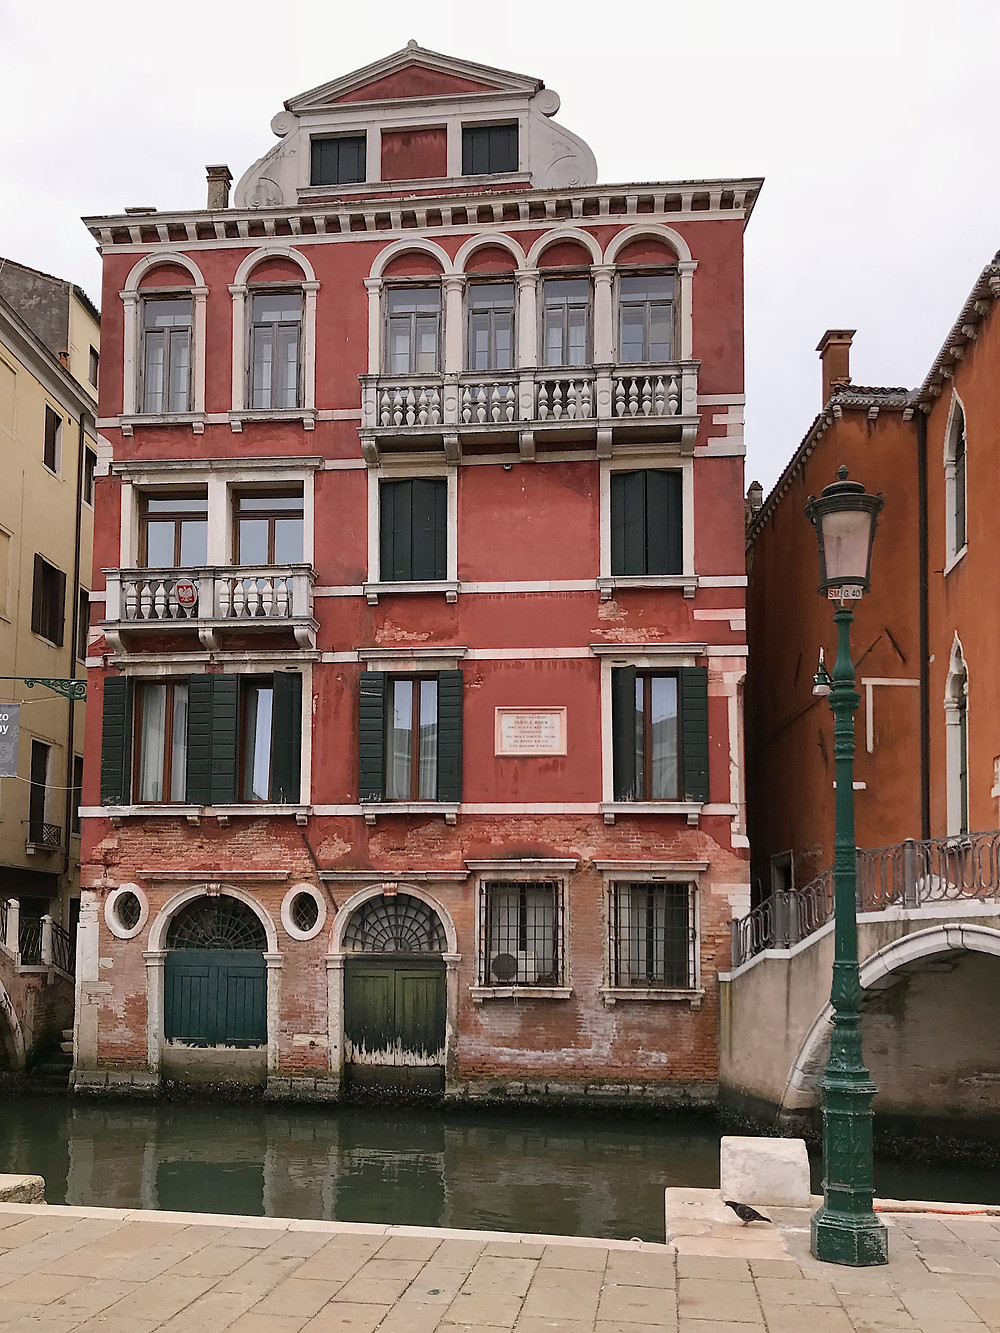 building in Venice on the canal